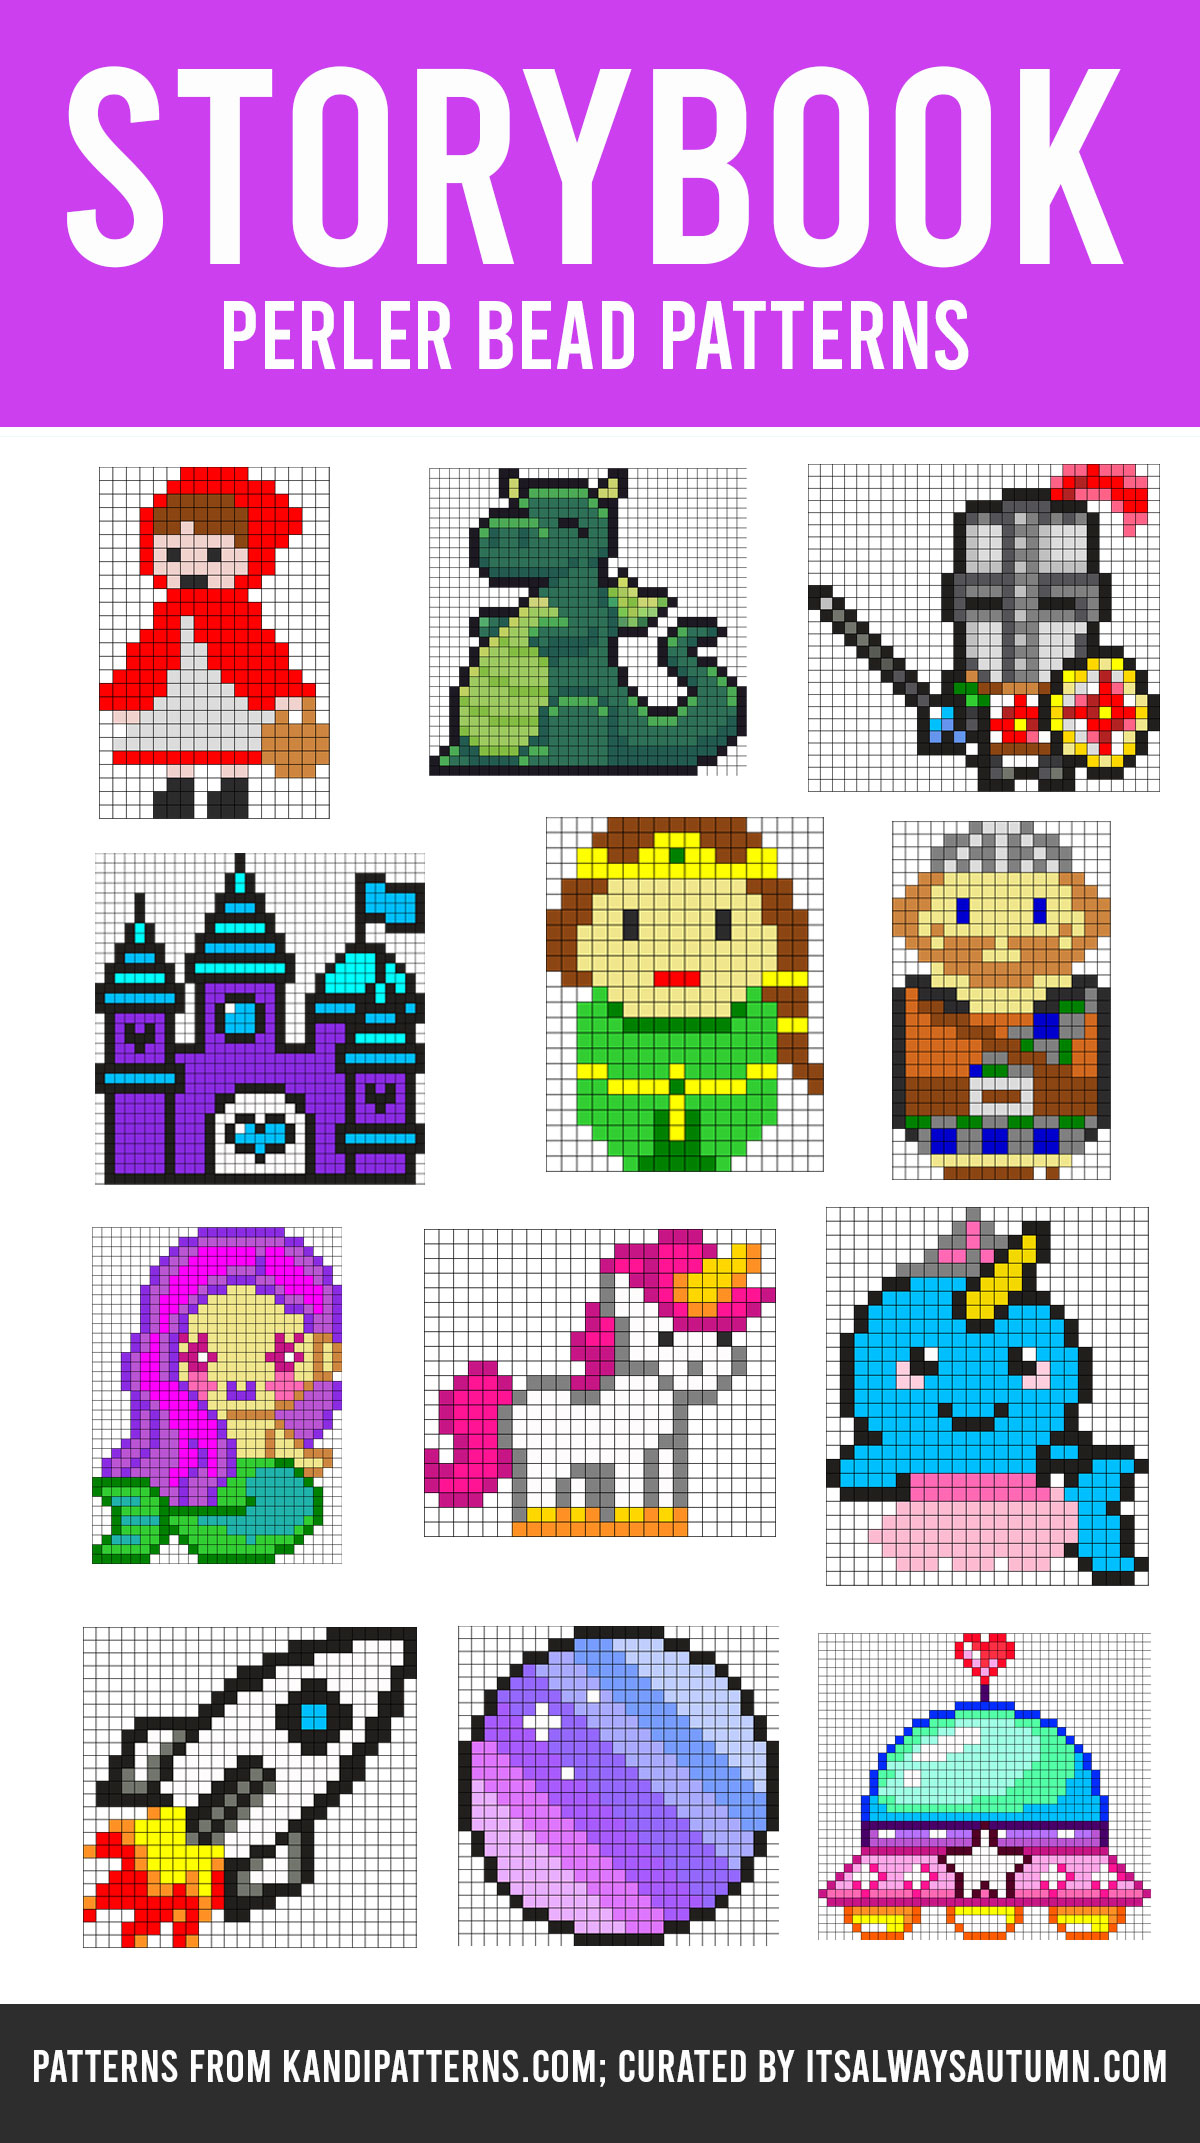 Storybook Perler bead patterns